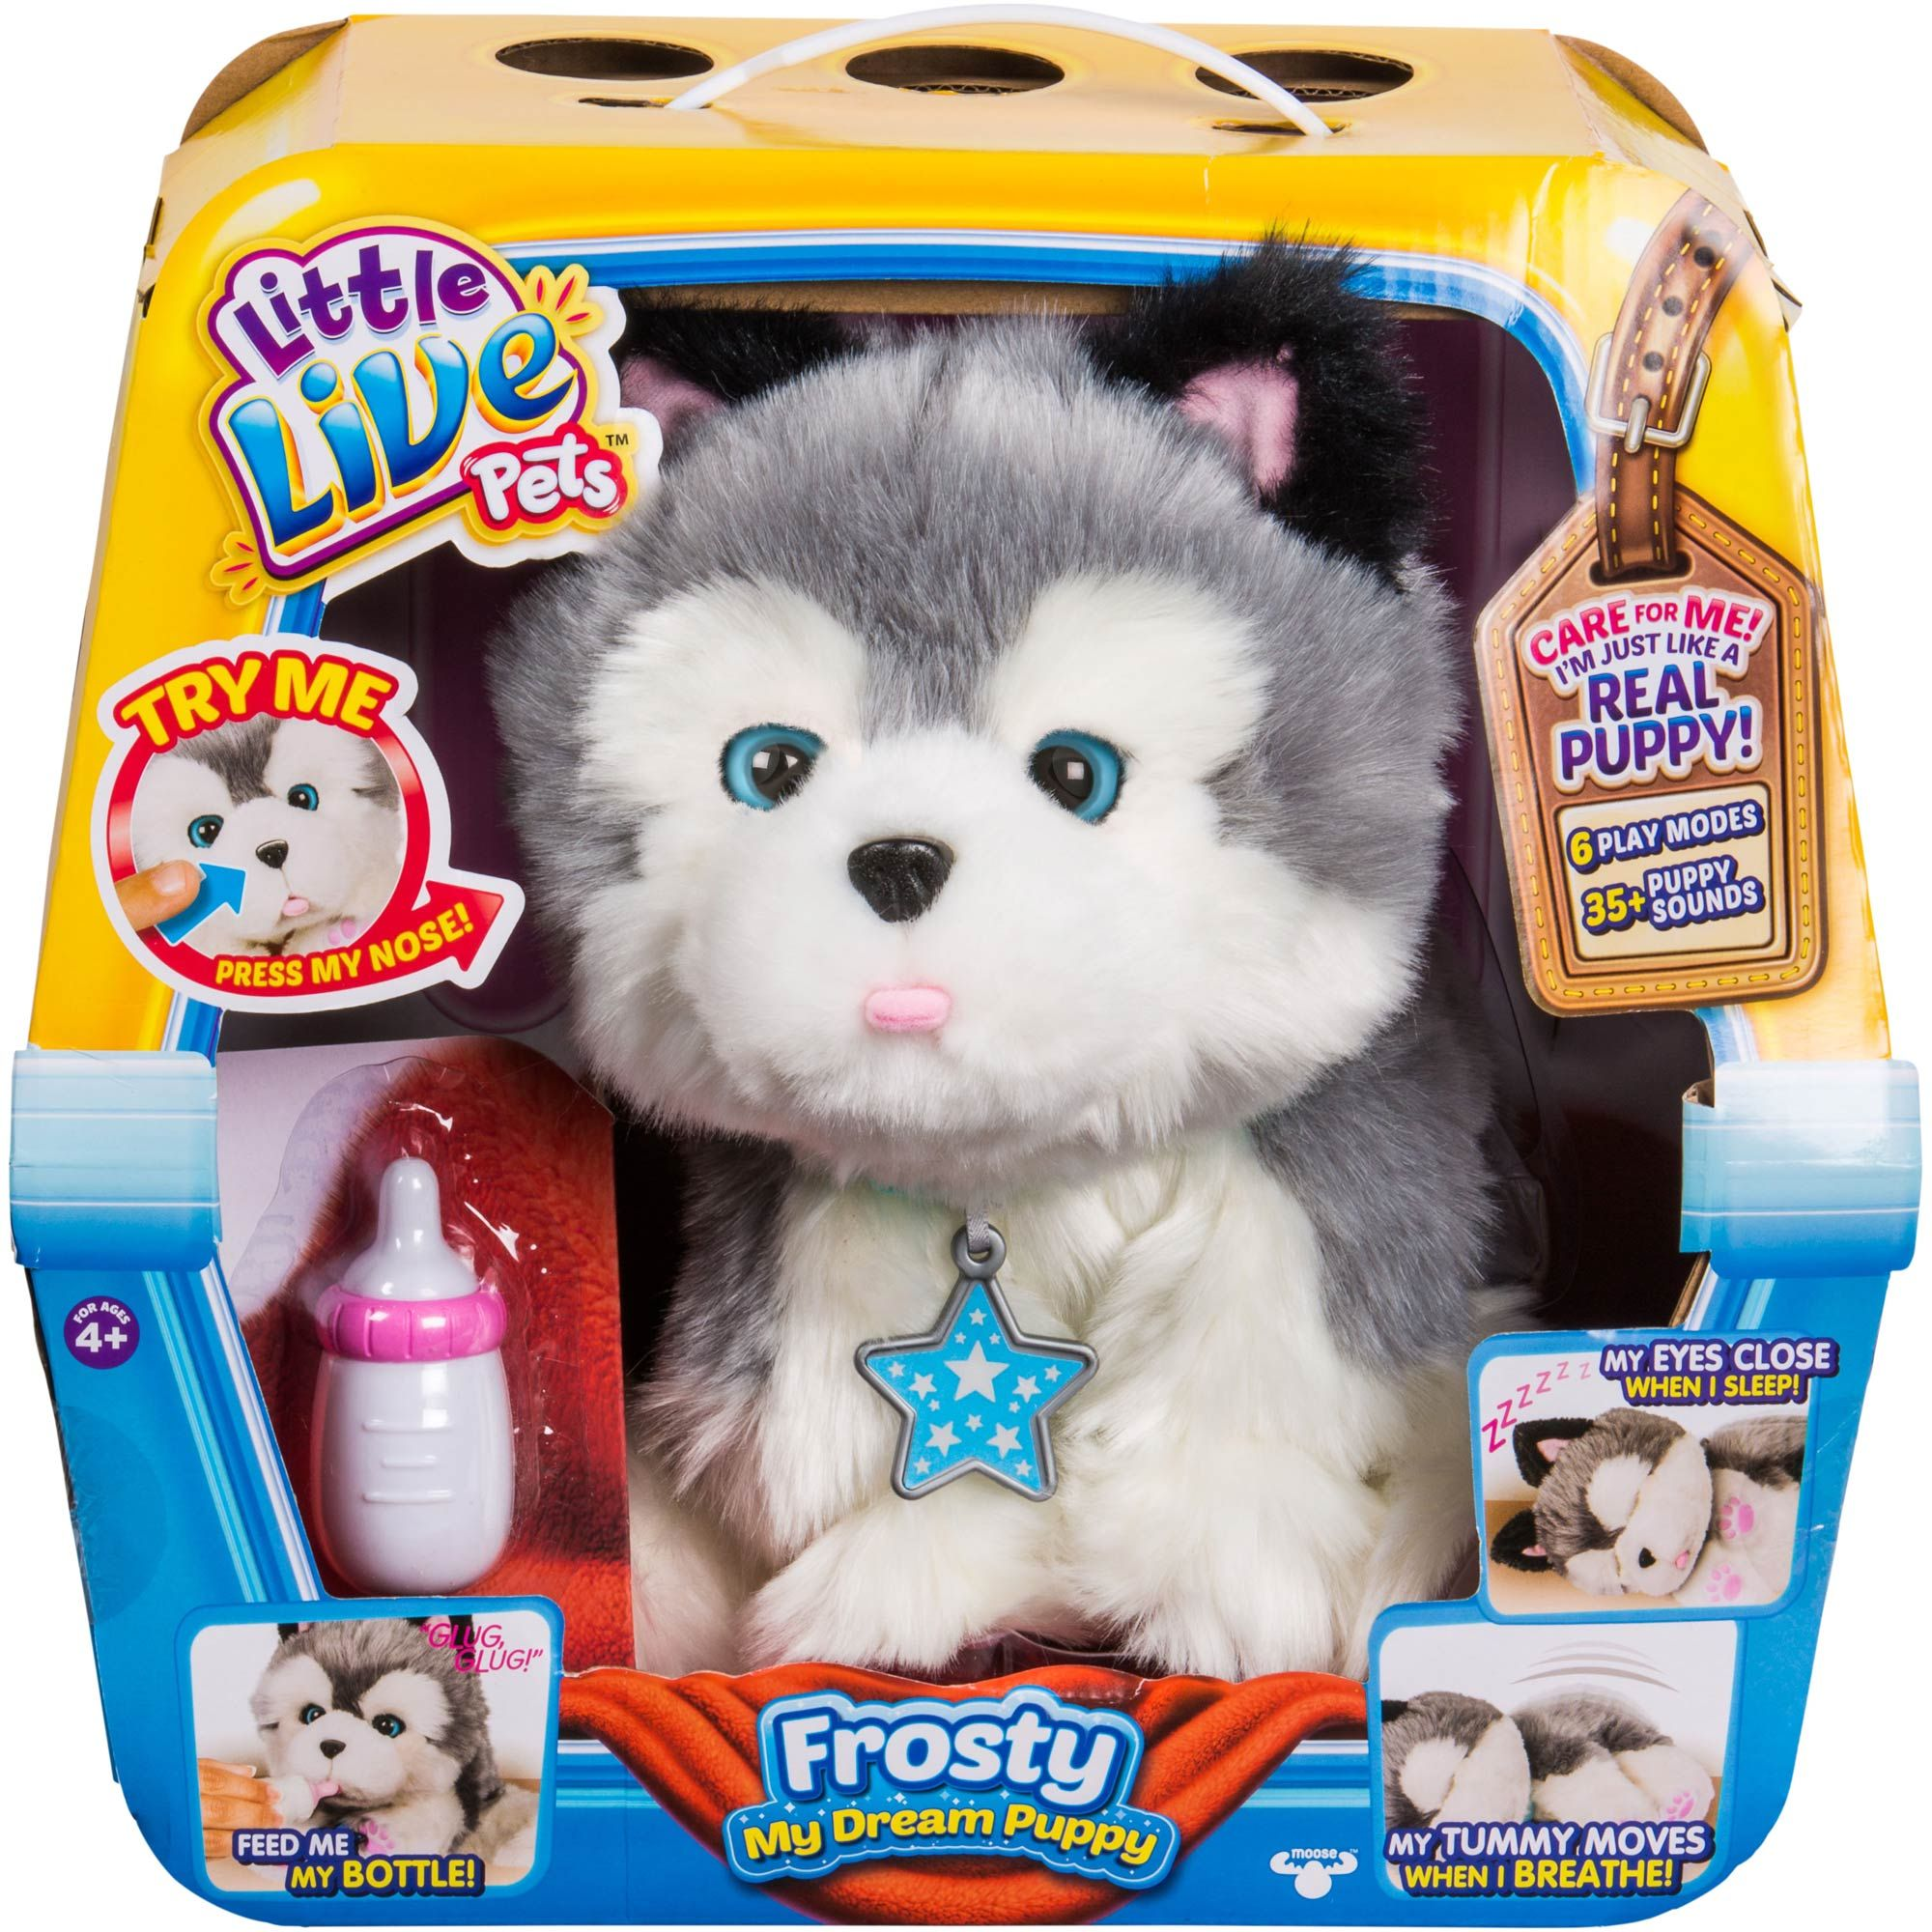 Frosty The Little Live Pets Husky Puppy From Moose Toys Is The No Mess Pup Who Loves To Be Loved Frosty Moves Feel Little Live Pets Kids Toys Animated Plush